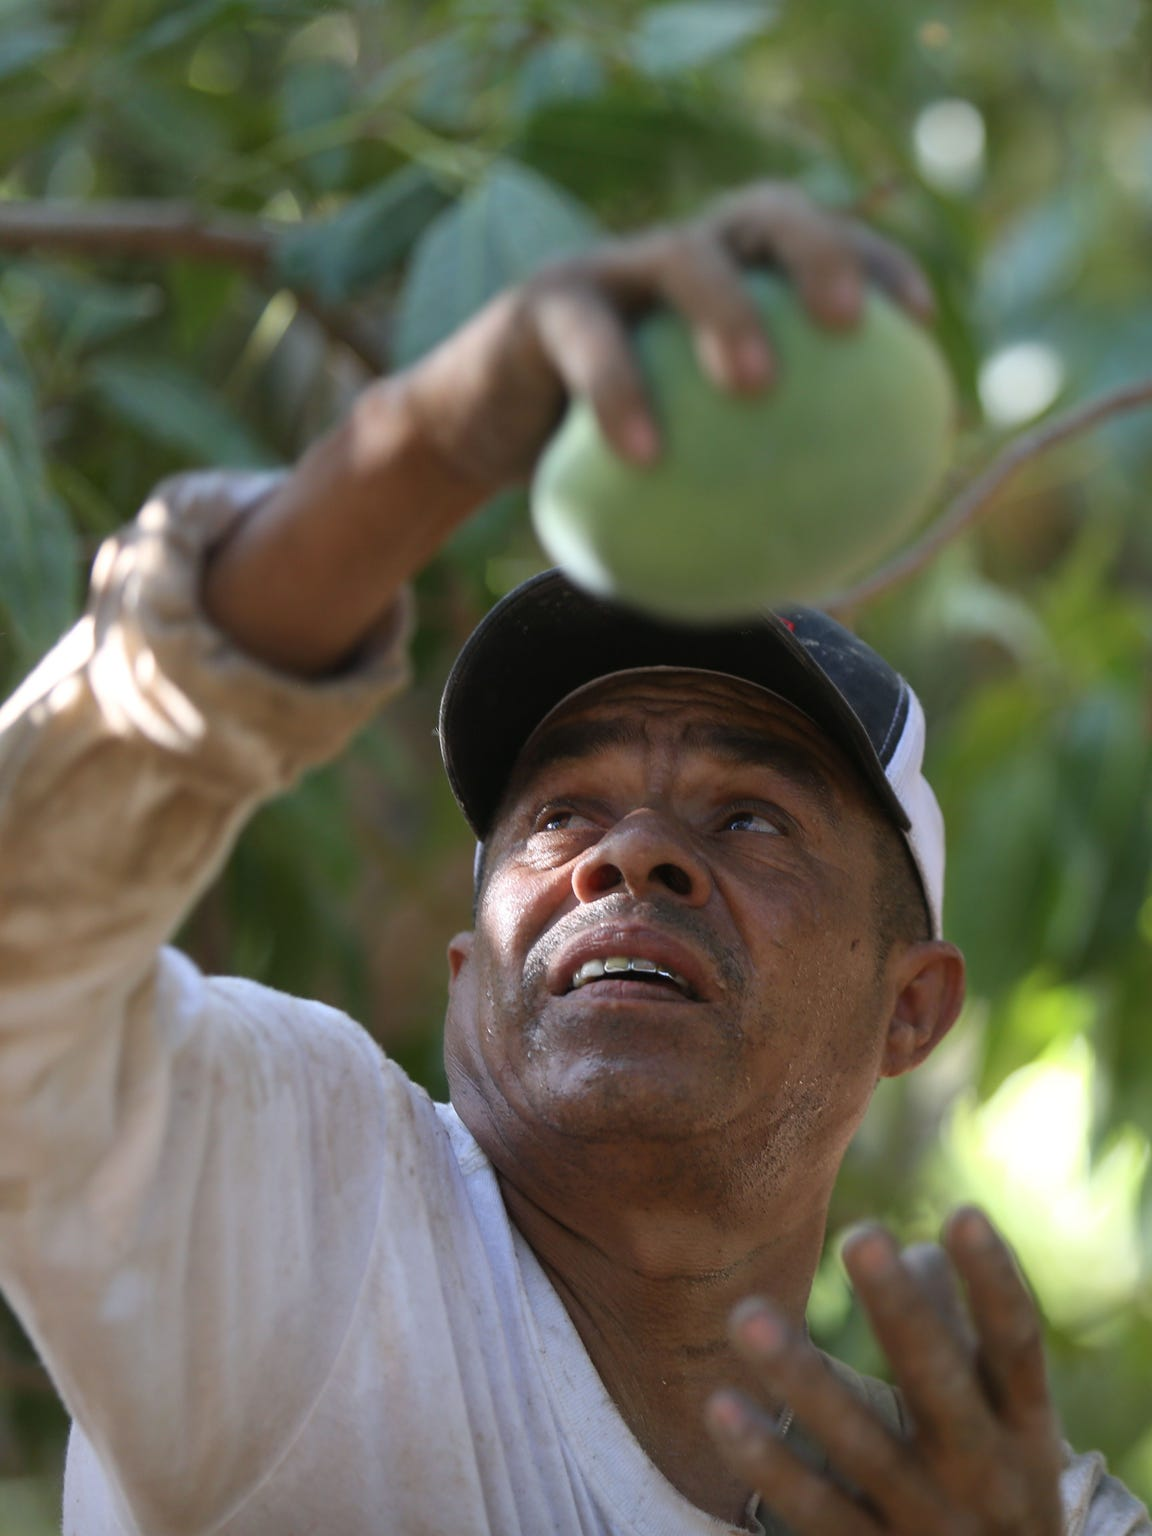 Francisco Alvarez Bautista picks mangos at a ranch near Salton City in late August. Alvarez's mother, Maria Bautista, died after suffering heat exposure during a day of picking grapes in 2008.